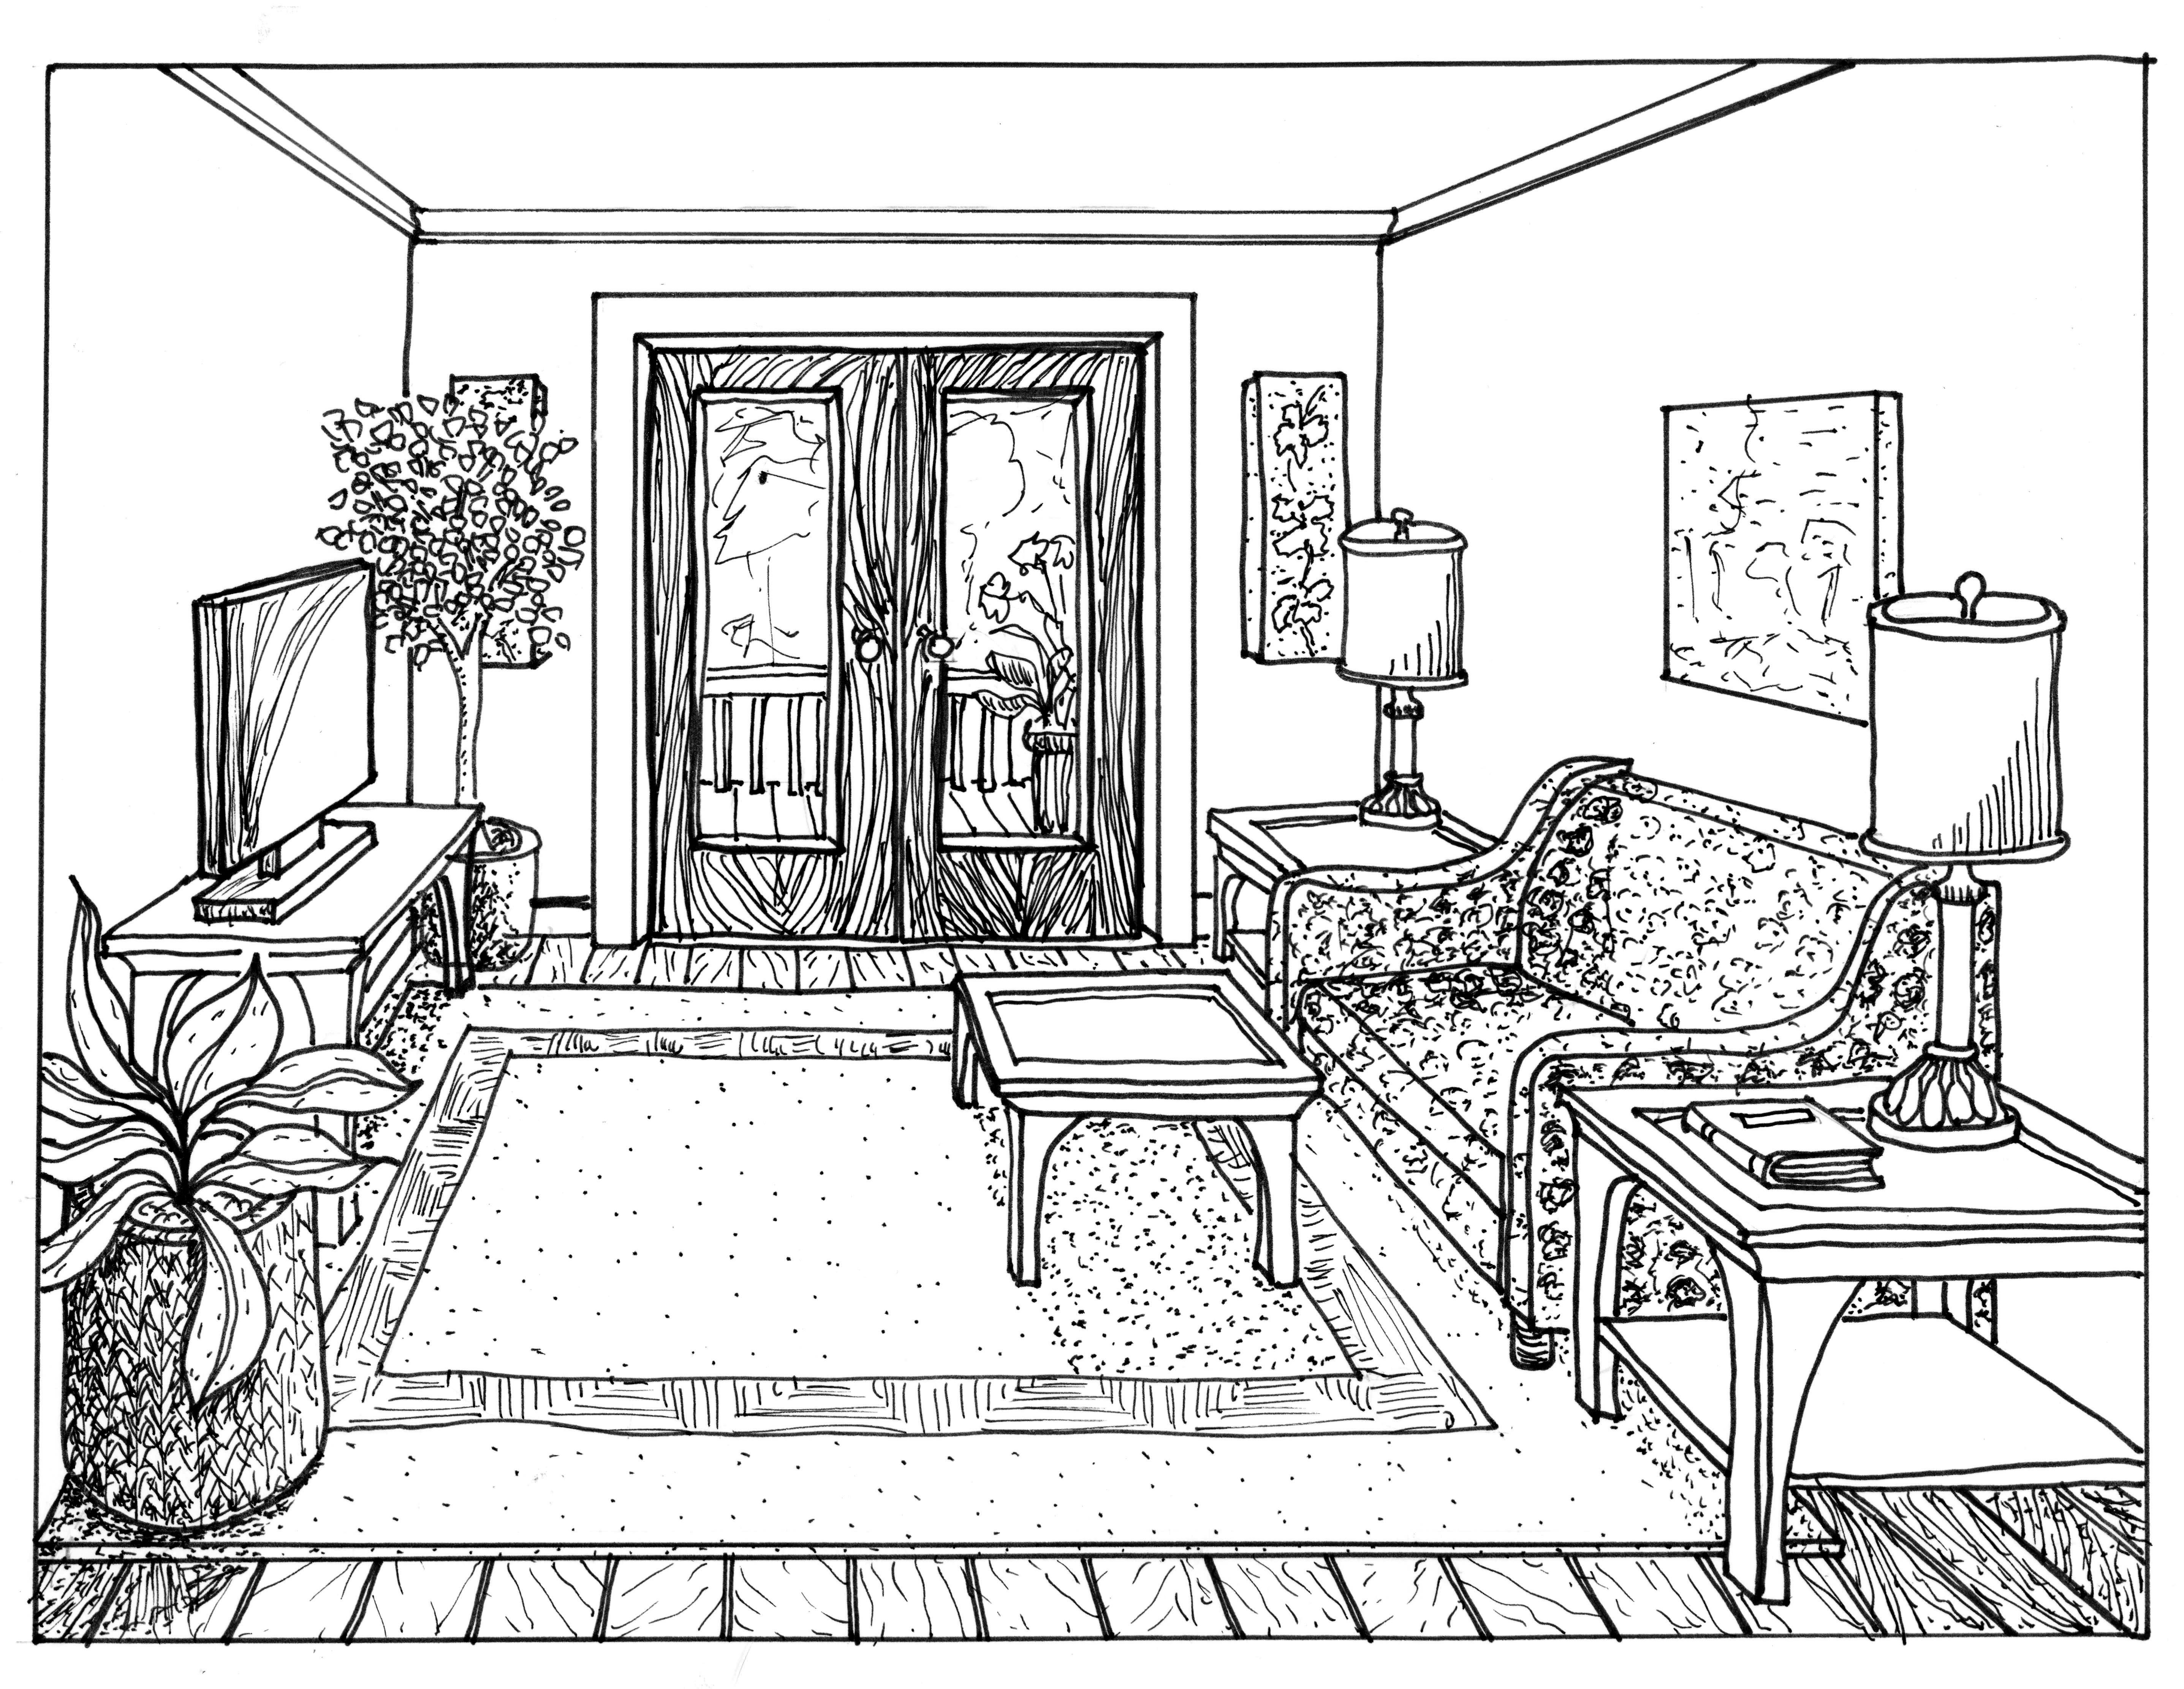 5748x4446 one point perspective interior drawing drawings pinterest - Interior Design Drawings Easy